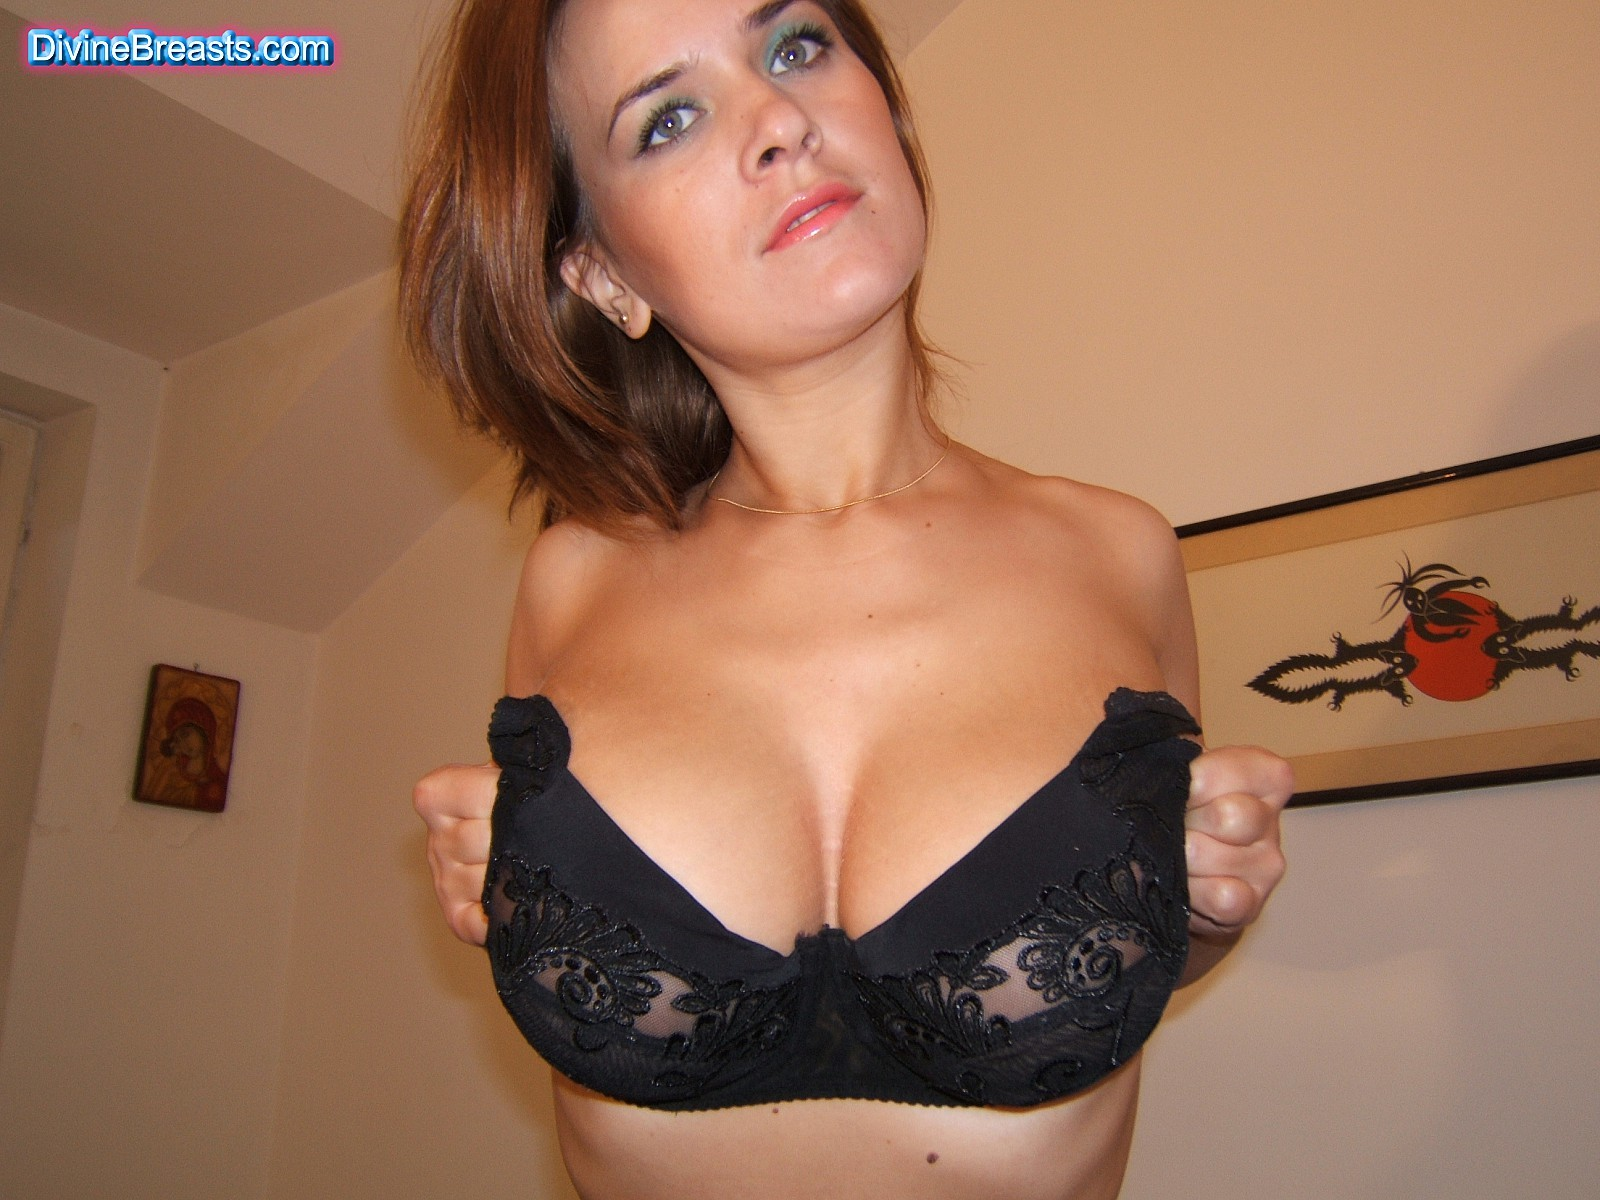 The boobs hot bra with big with girl and remarkable, very valuable